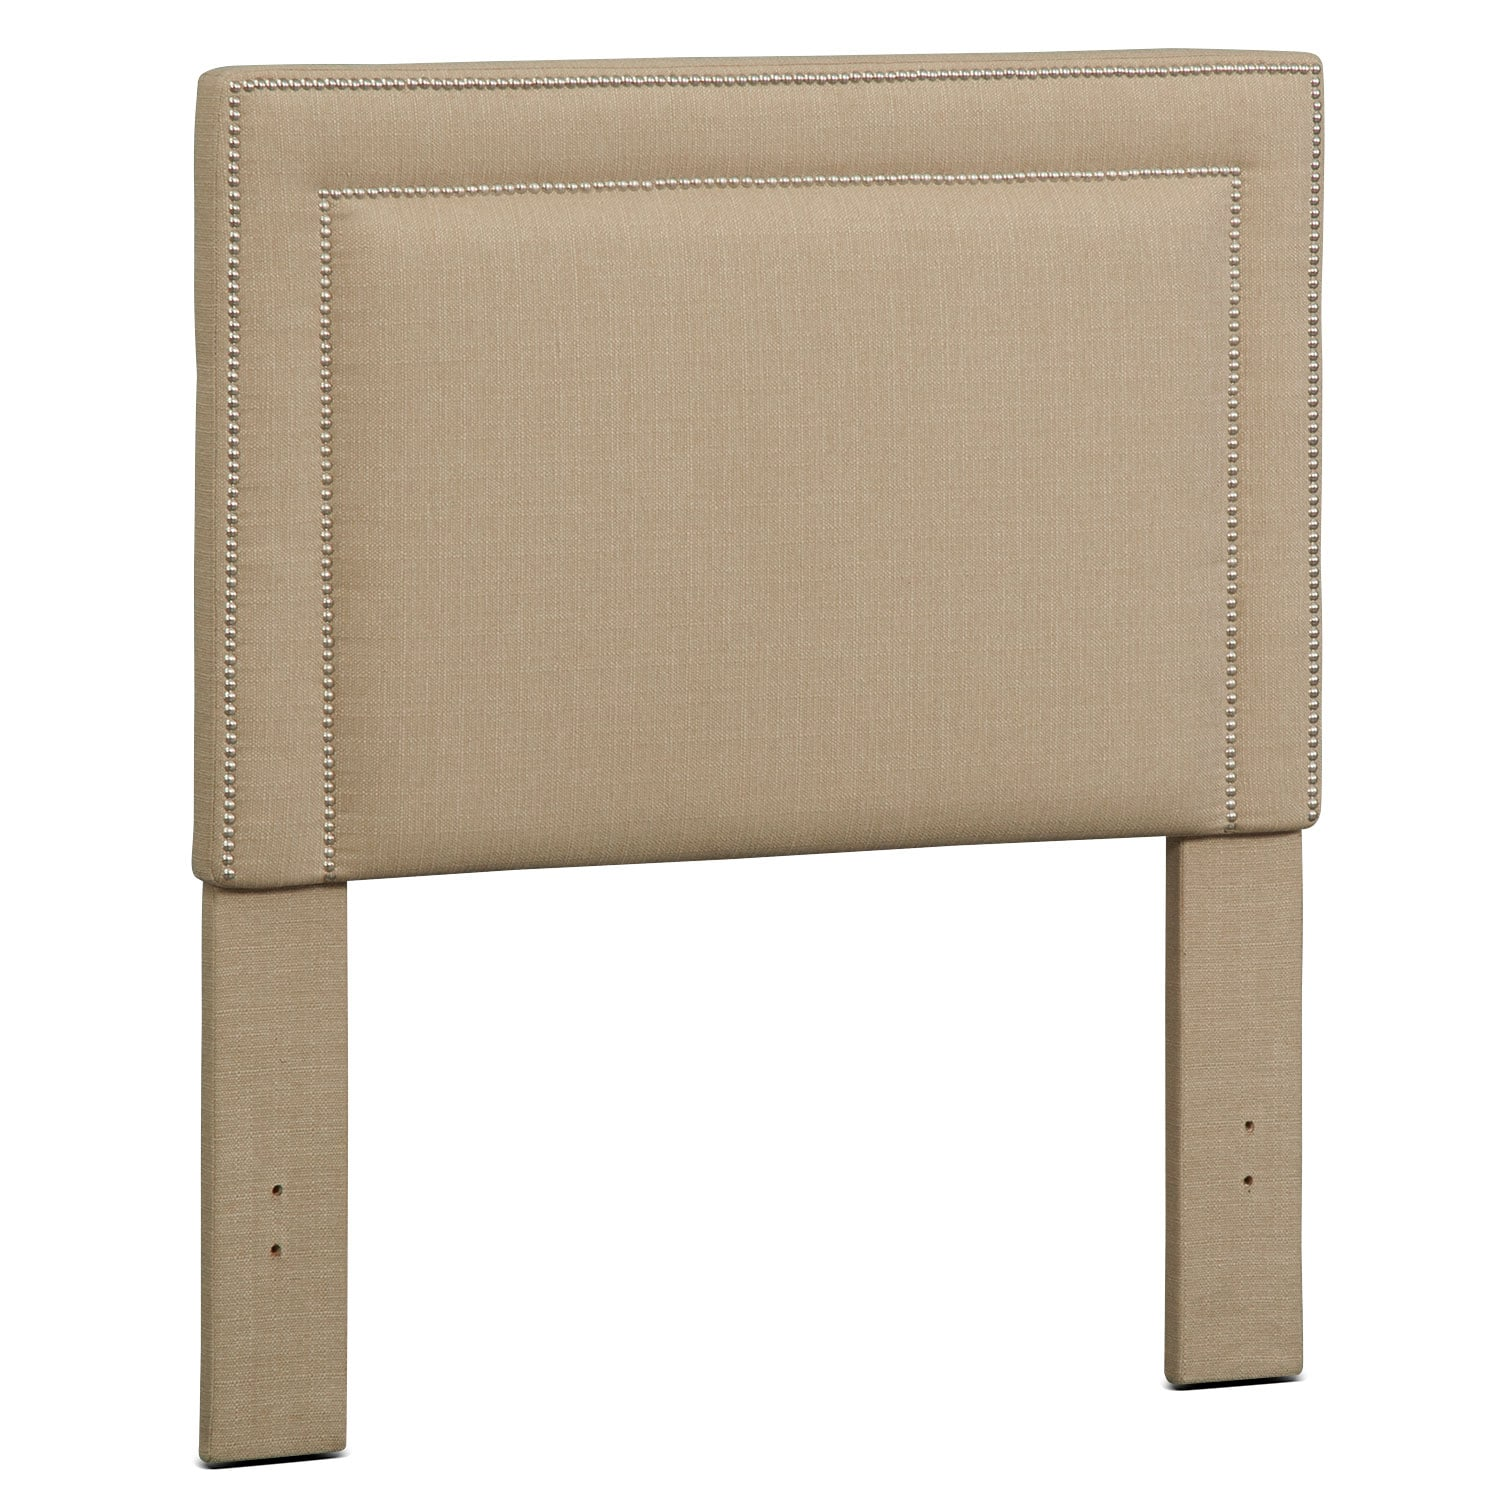 Bedroom Furniture - Natalie Full Upholstered Headboard - Tan